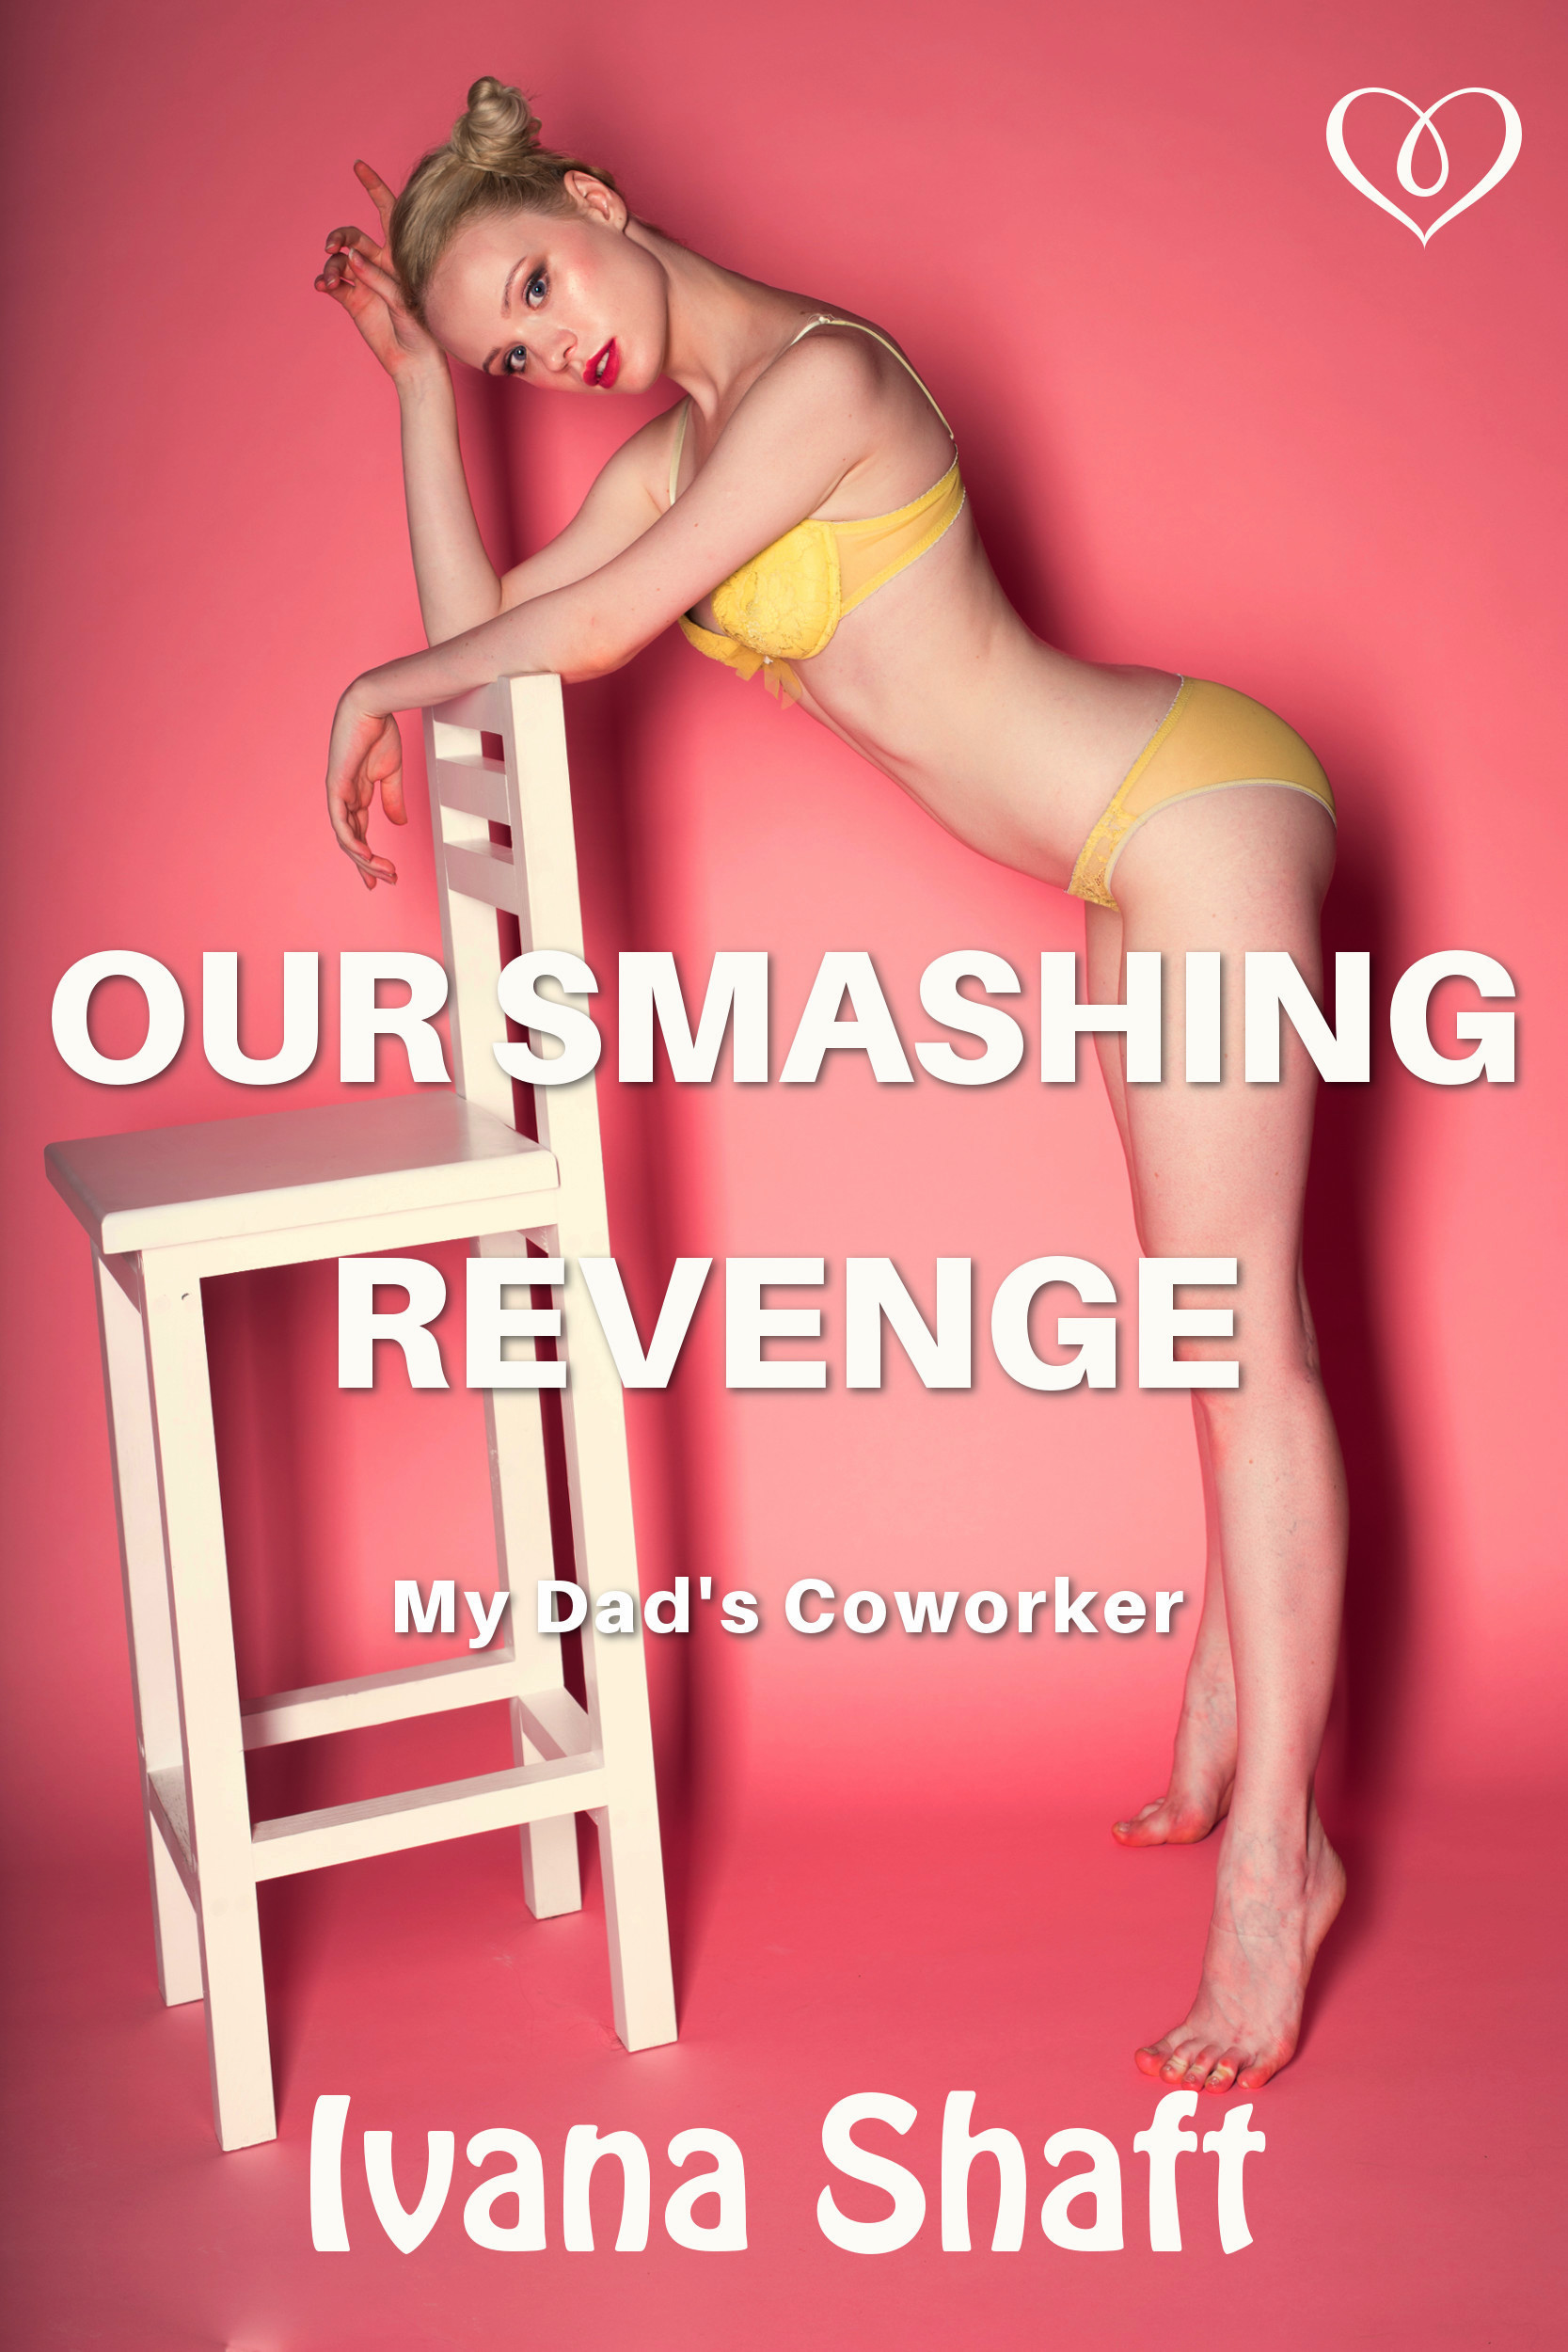 Our Smashing Revenge: My Dads Coworker Ivana Shaft